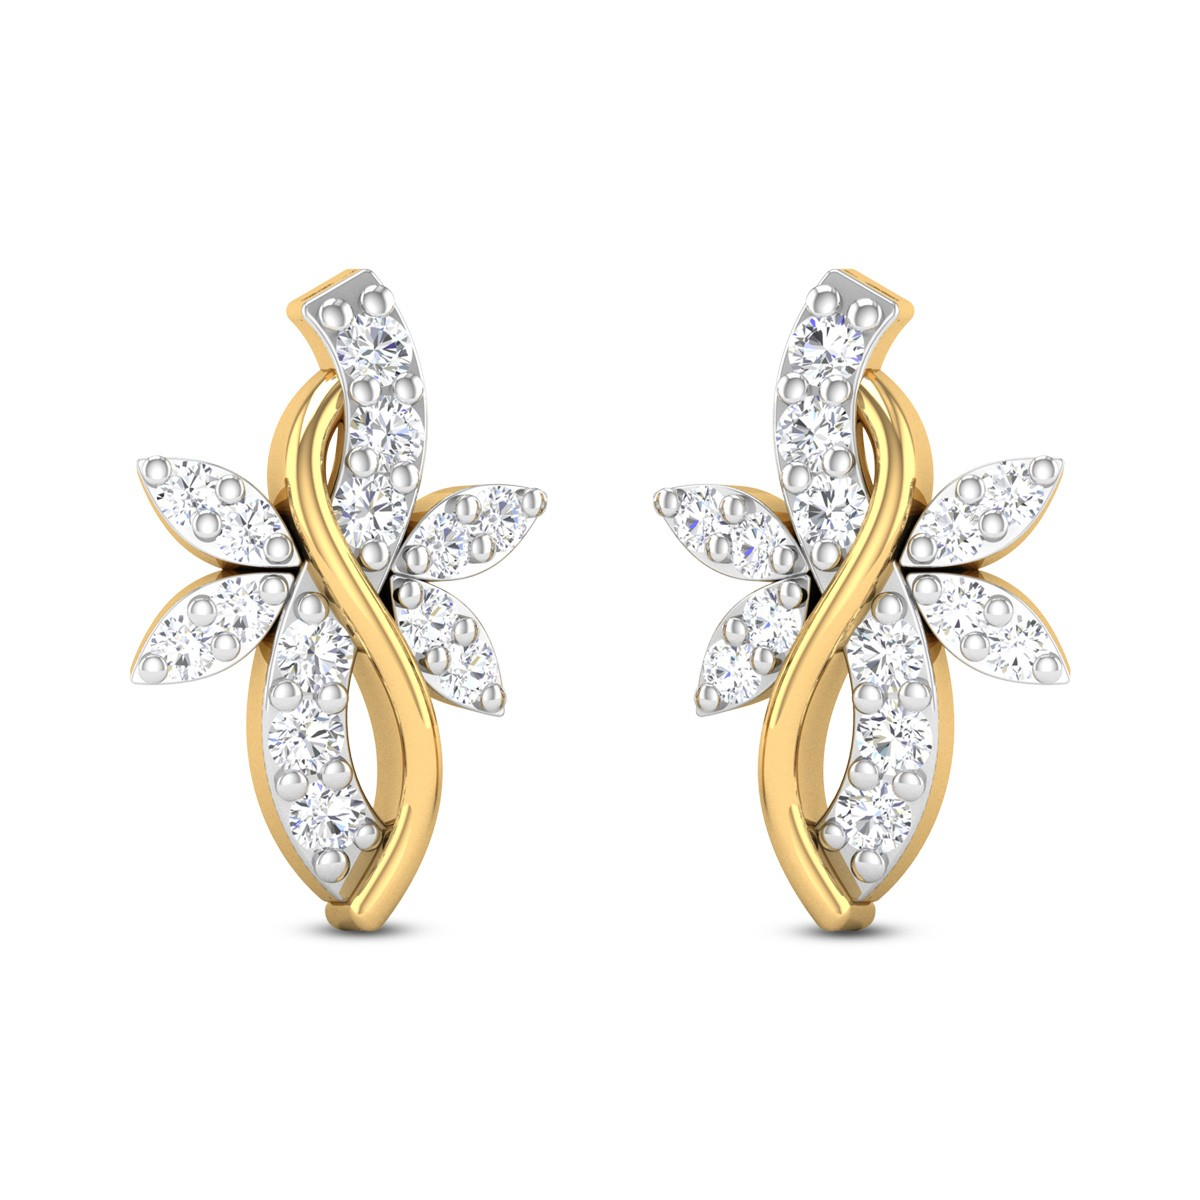 Willa Diamond Earrings